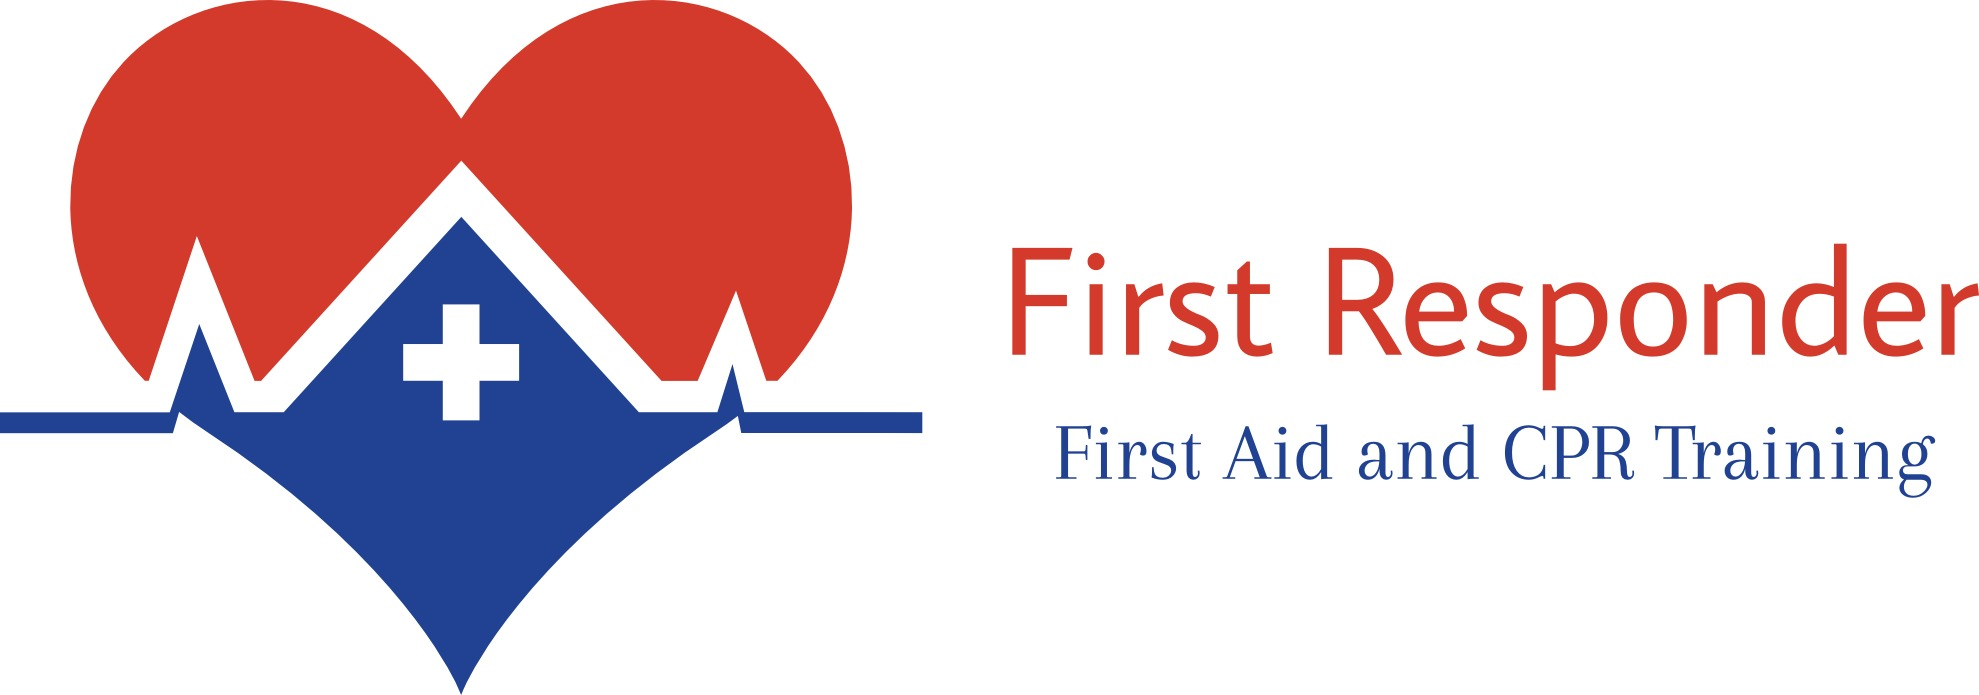 First responders first aid and cpr training first aid and cpr first responders first aid and cpr training xflitez Gallery